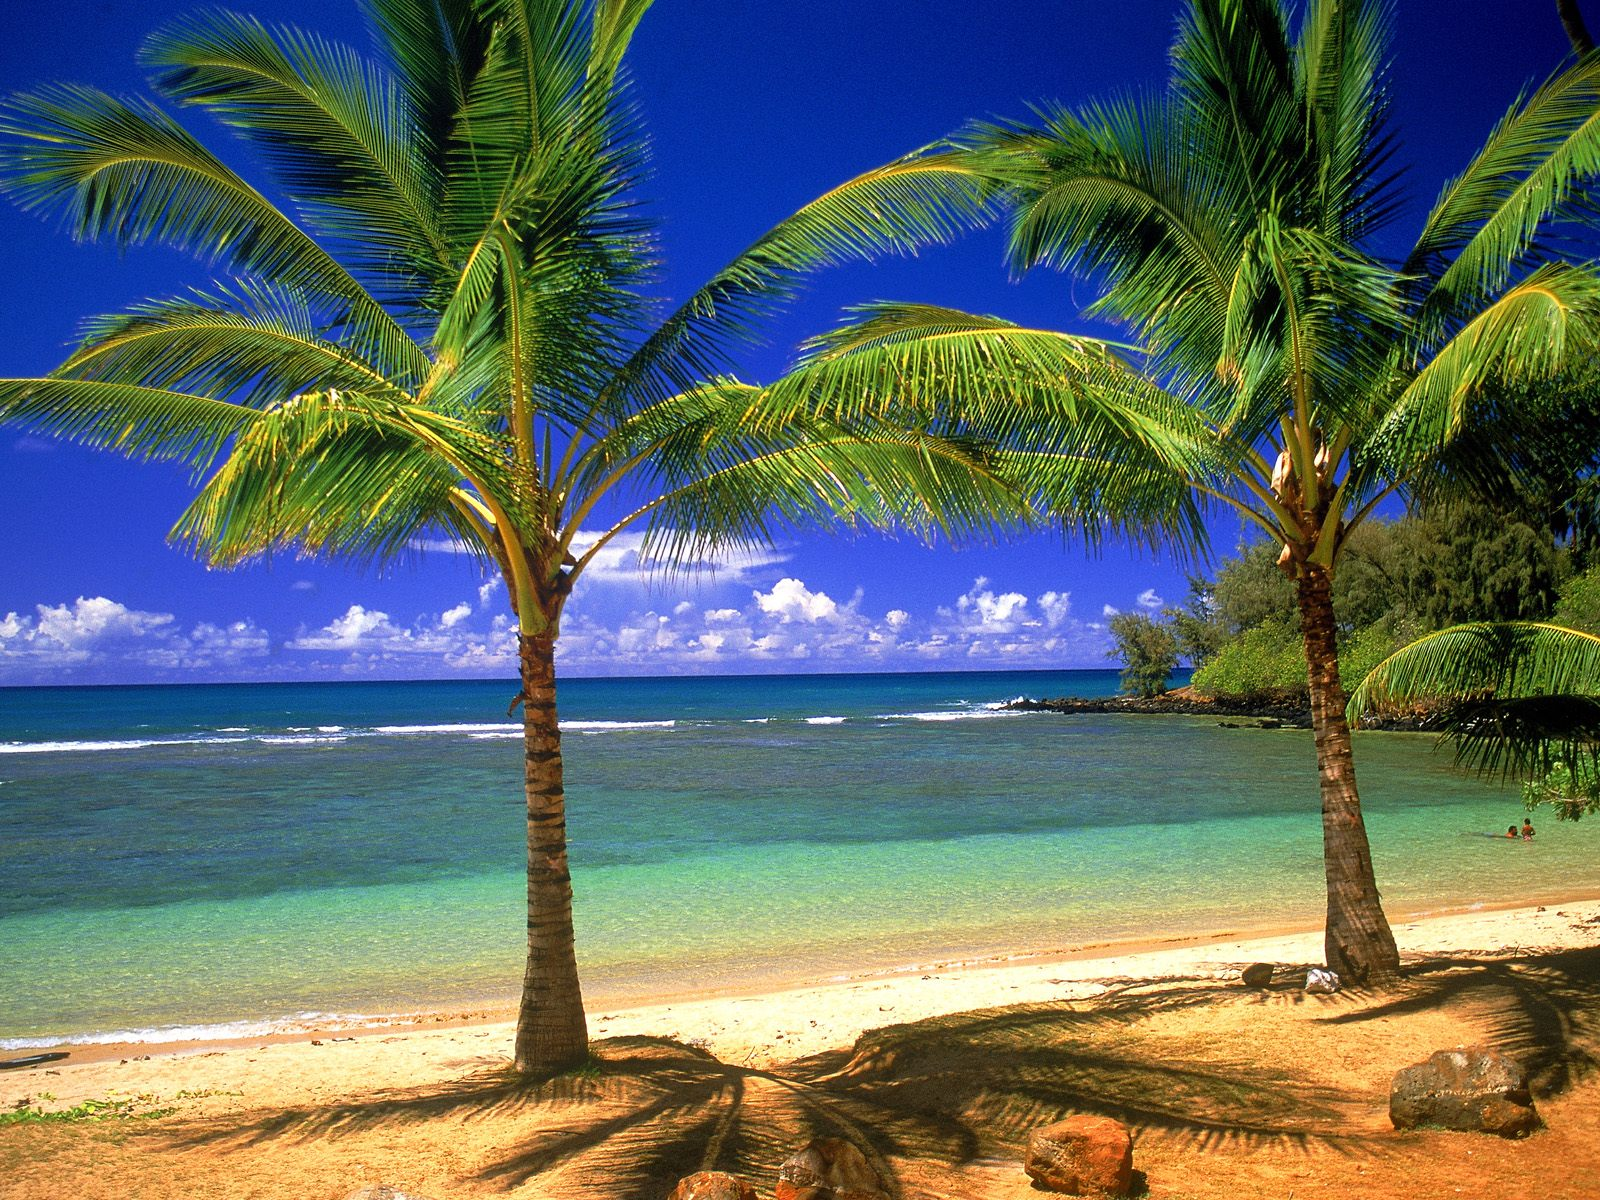 Hd Tropical Island Beach Paradise Wallpapers And Backgrounds: The Rinsou Wallpapers: Wallpaper Desktop